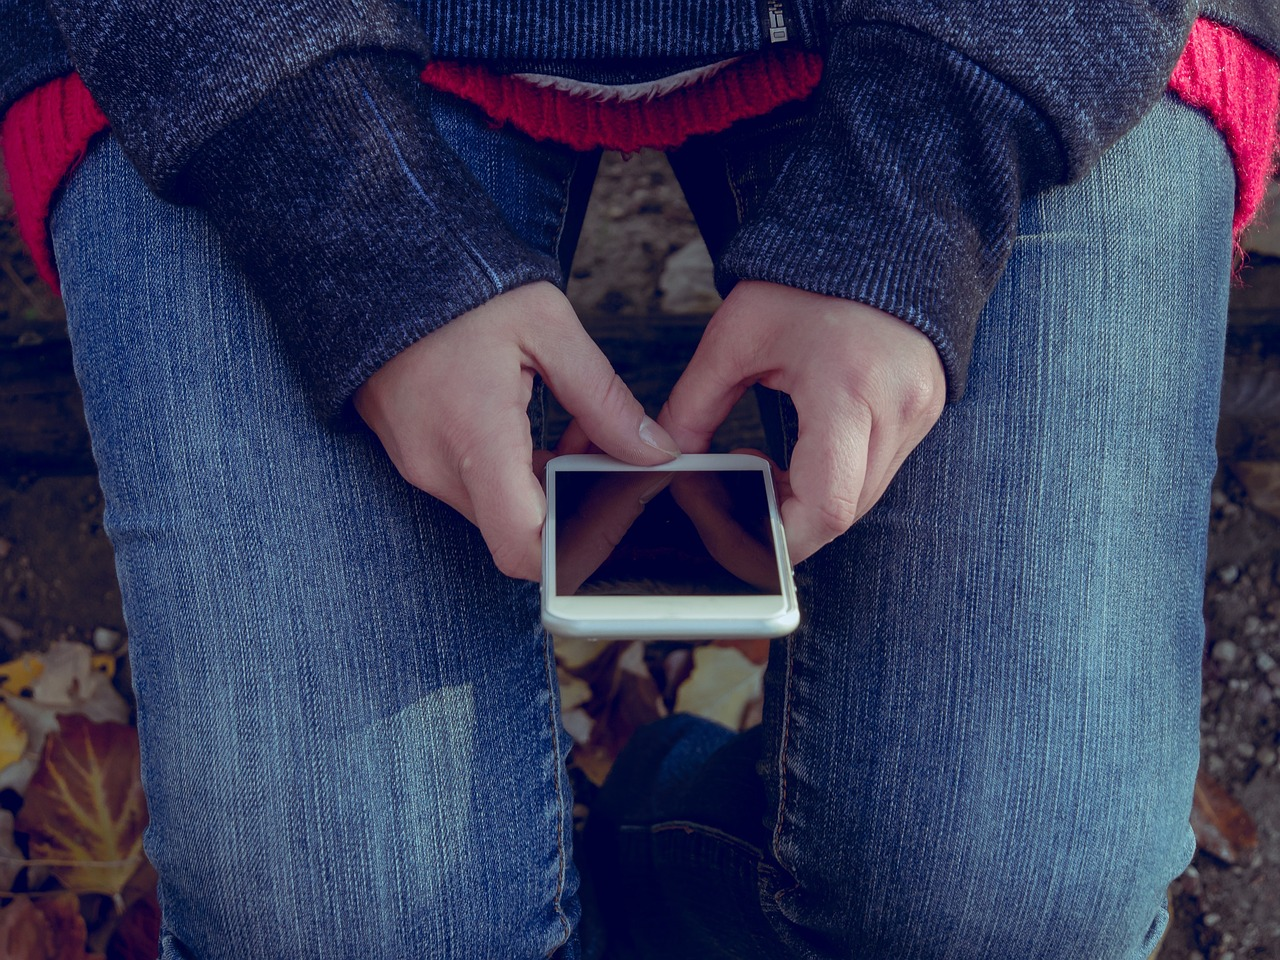 The Problem of Teen Sexting & What Parents Can Do